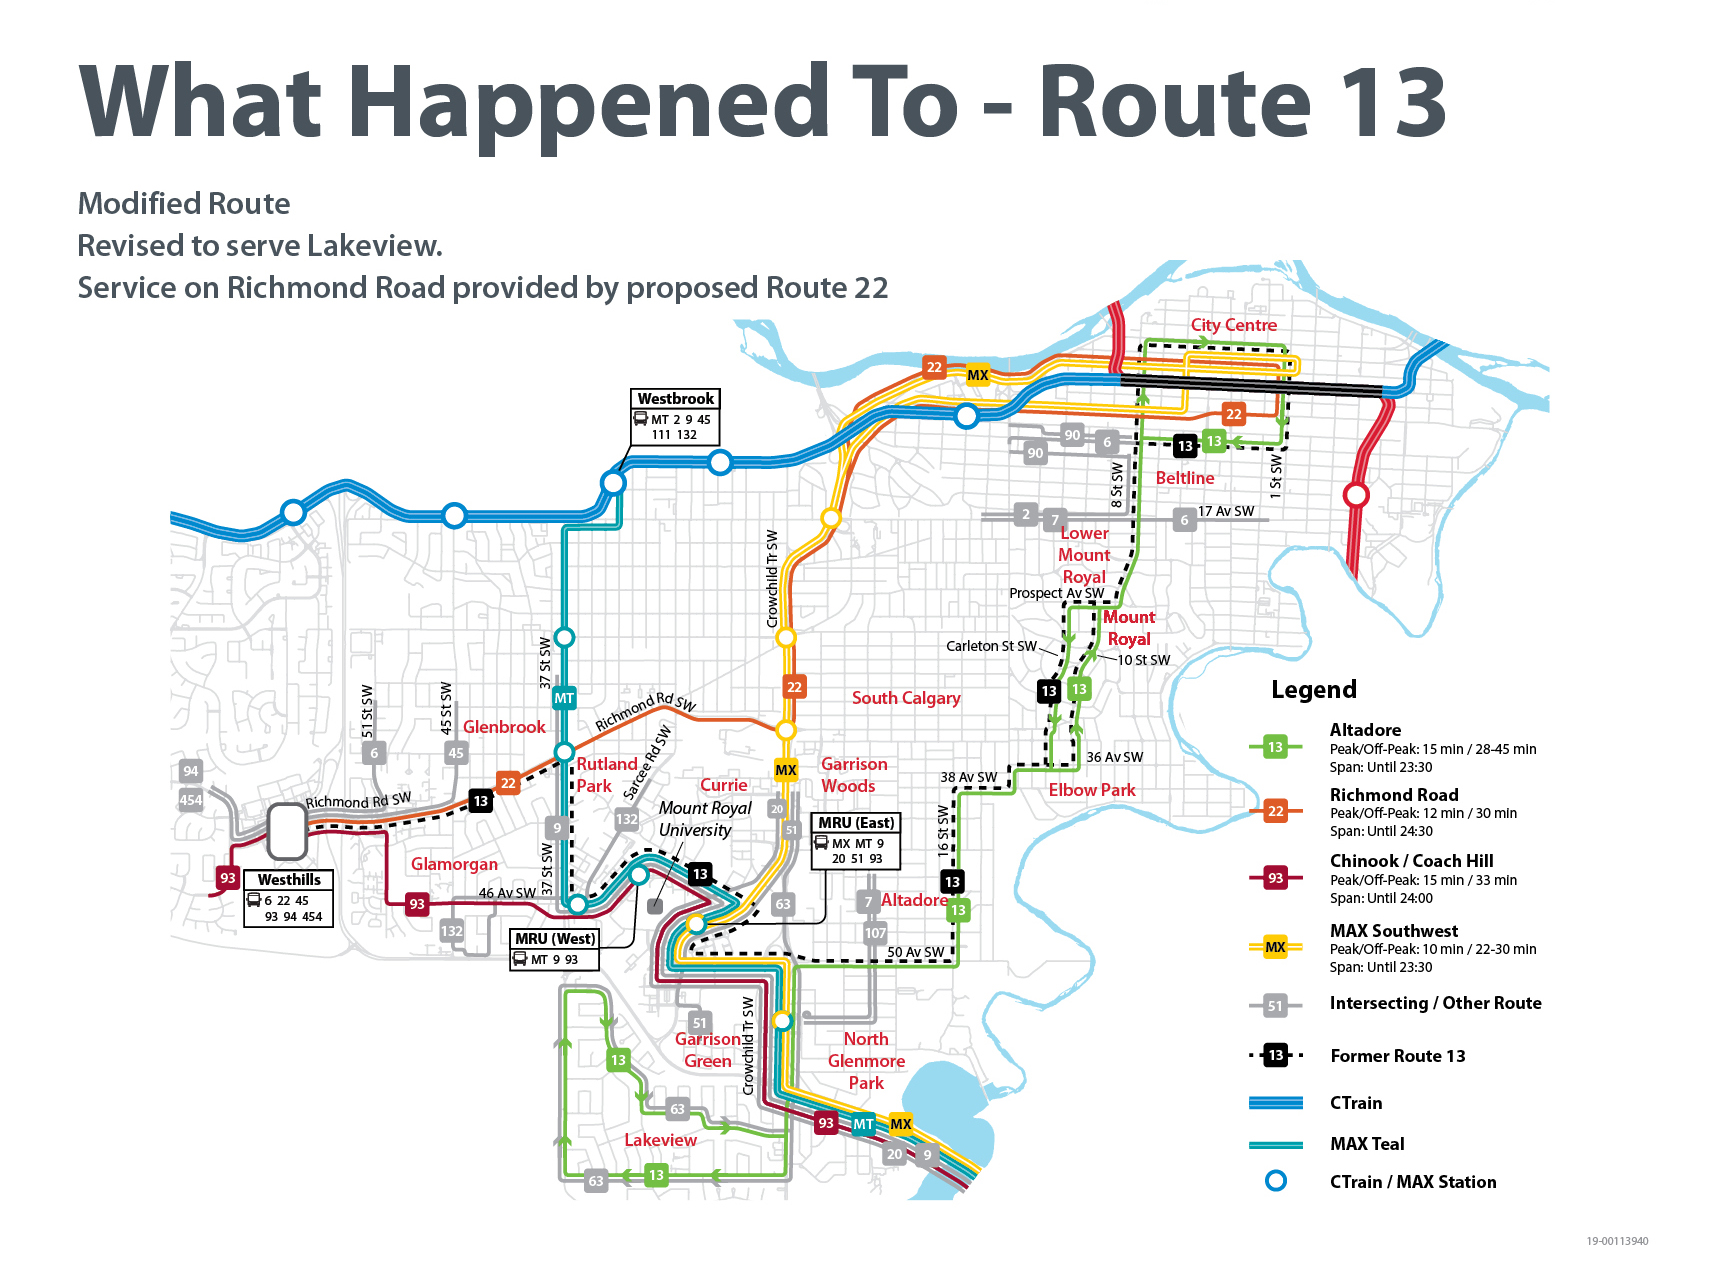 ​What Happened to Route 13